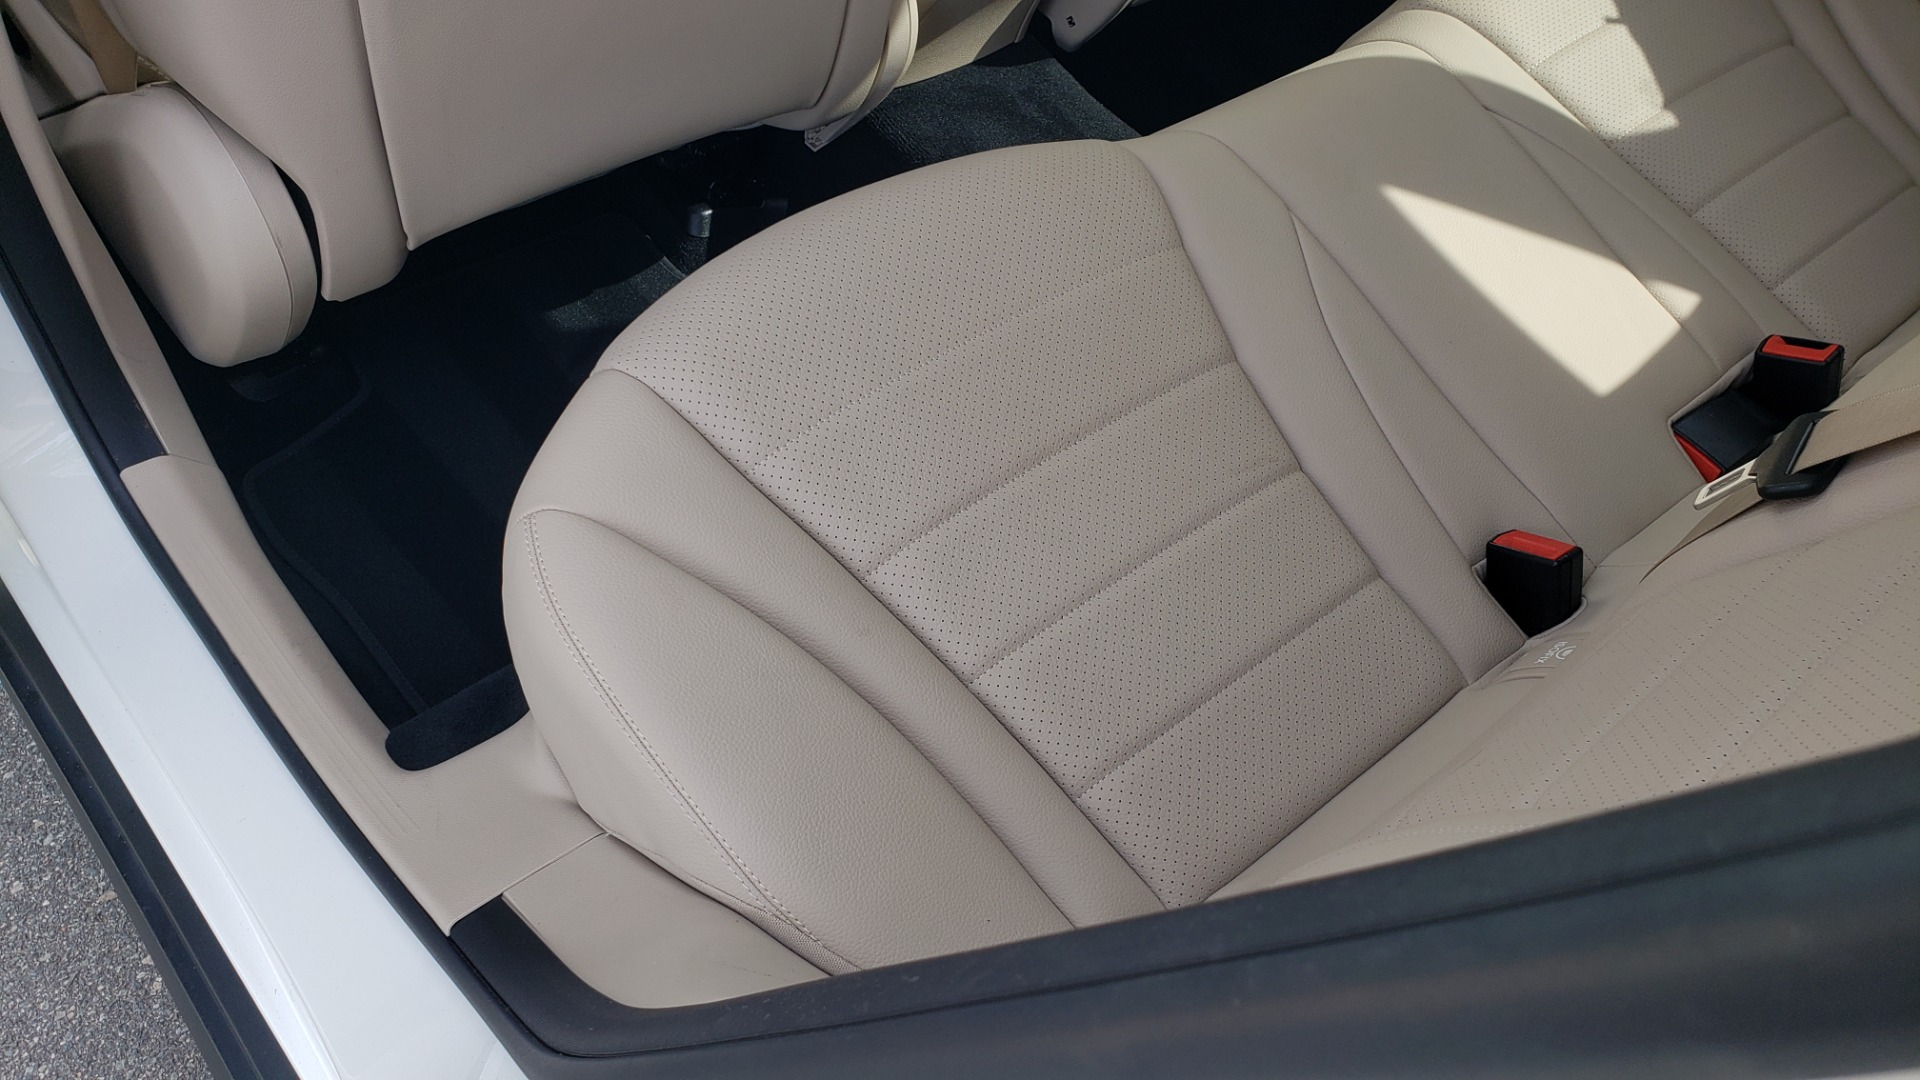 Used 2018 Mercedes-Benz GLC 300 4MATIC / PREM PKG / PANO-ROOF / APPLE / REARVIEW for sale $33,397 at Formula Imports in Charlotte NC 28227 56